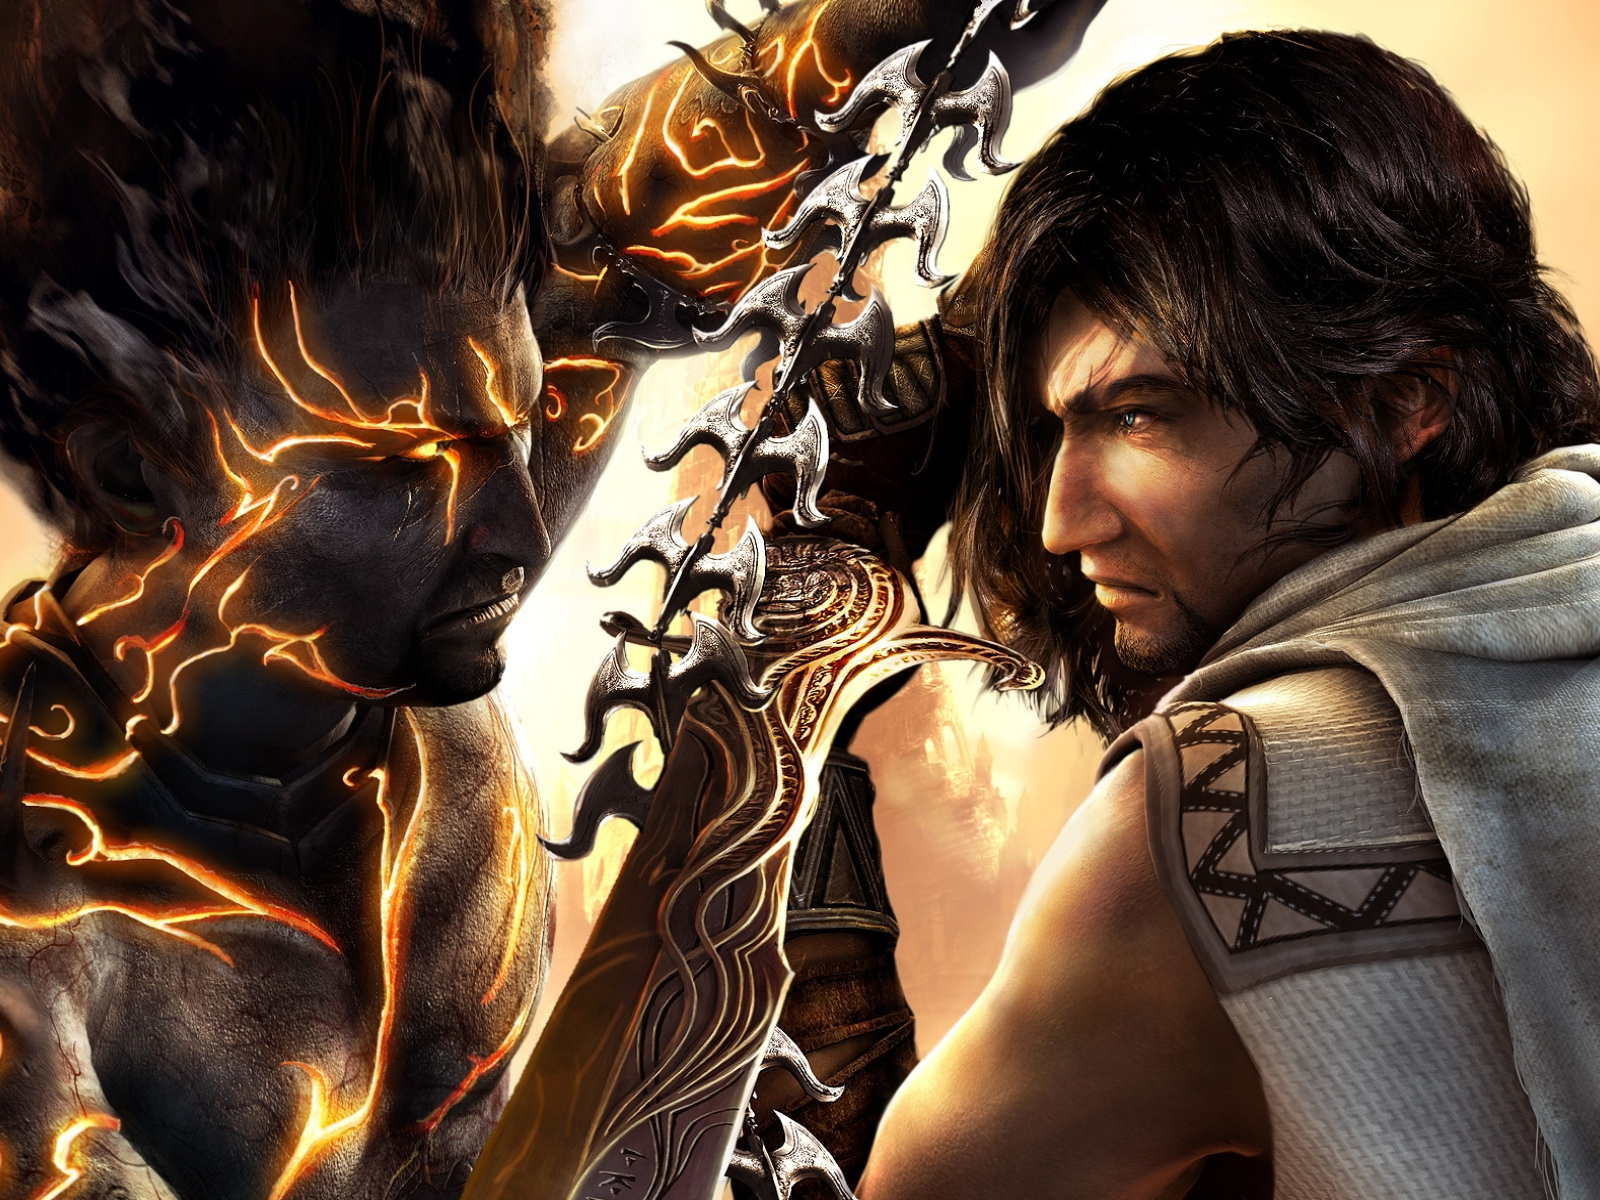 Prince Of Persia The Sands Of Time Wallpapers Movie Hq Prince Of Persia The Sands Of Time Pictures 4k